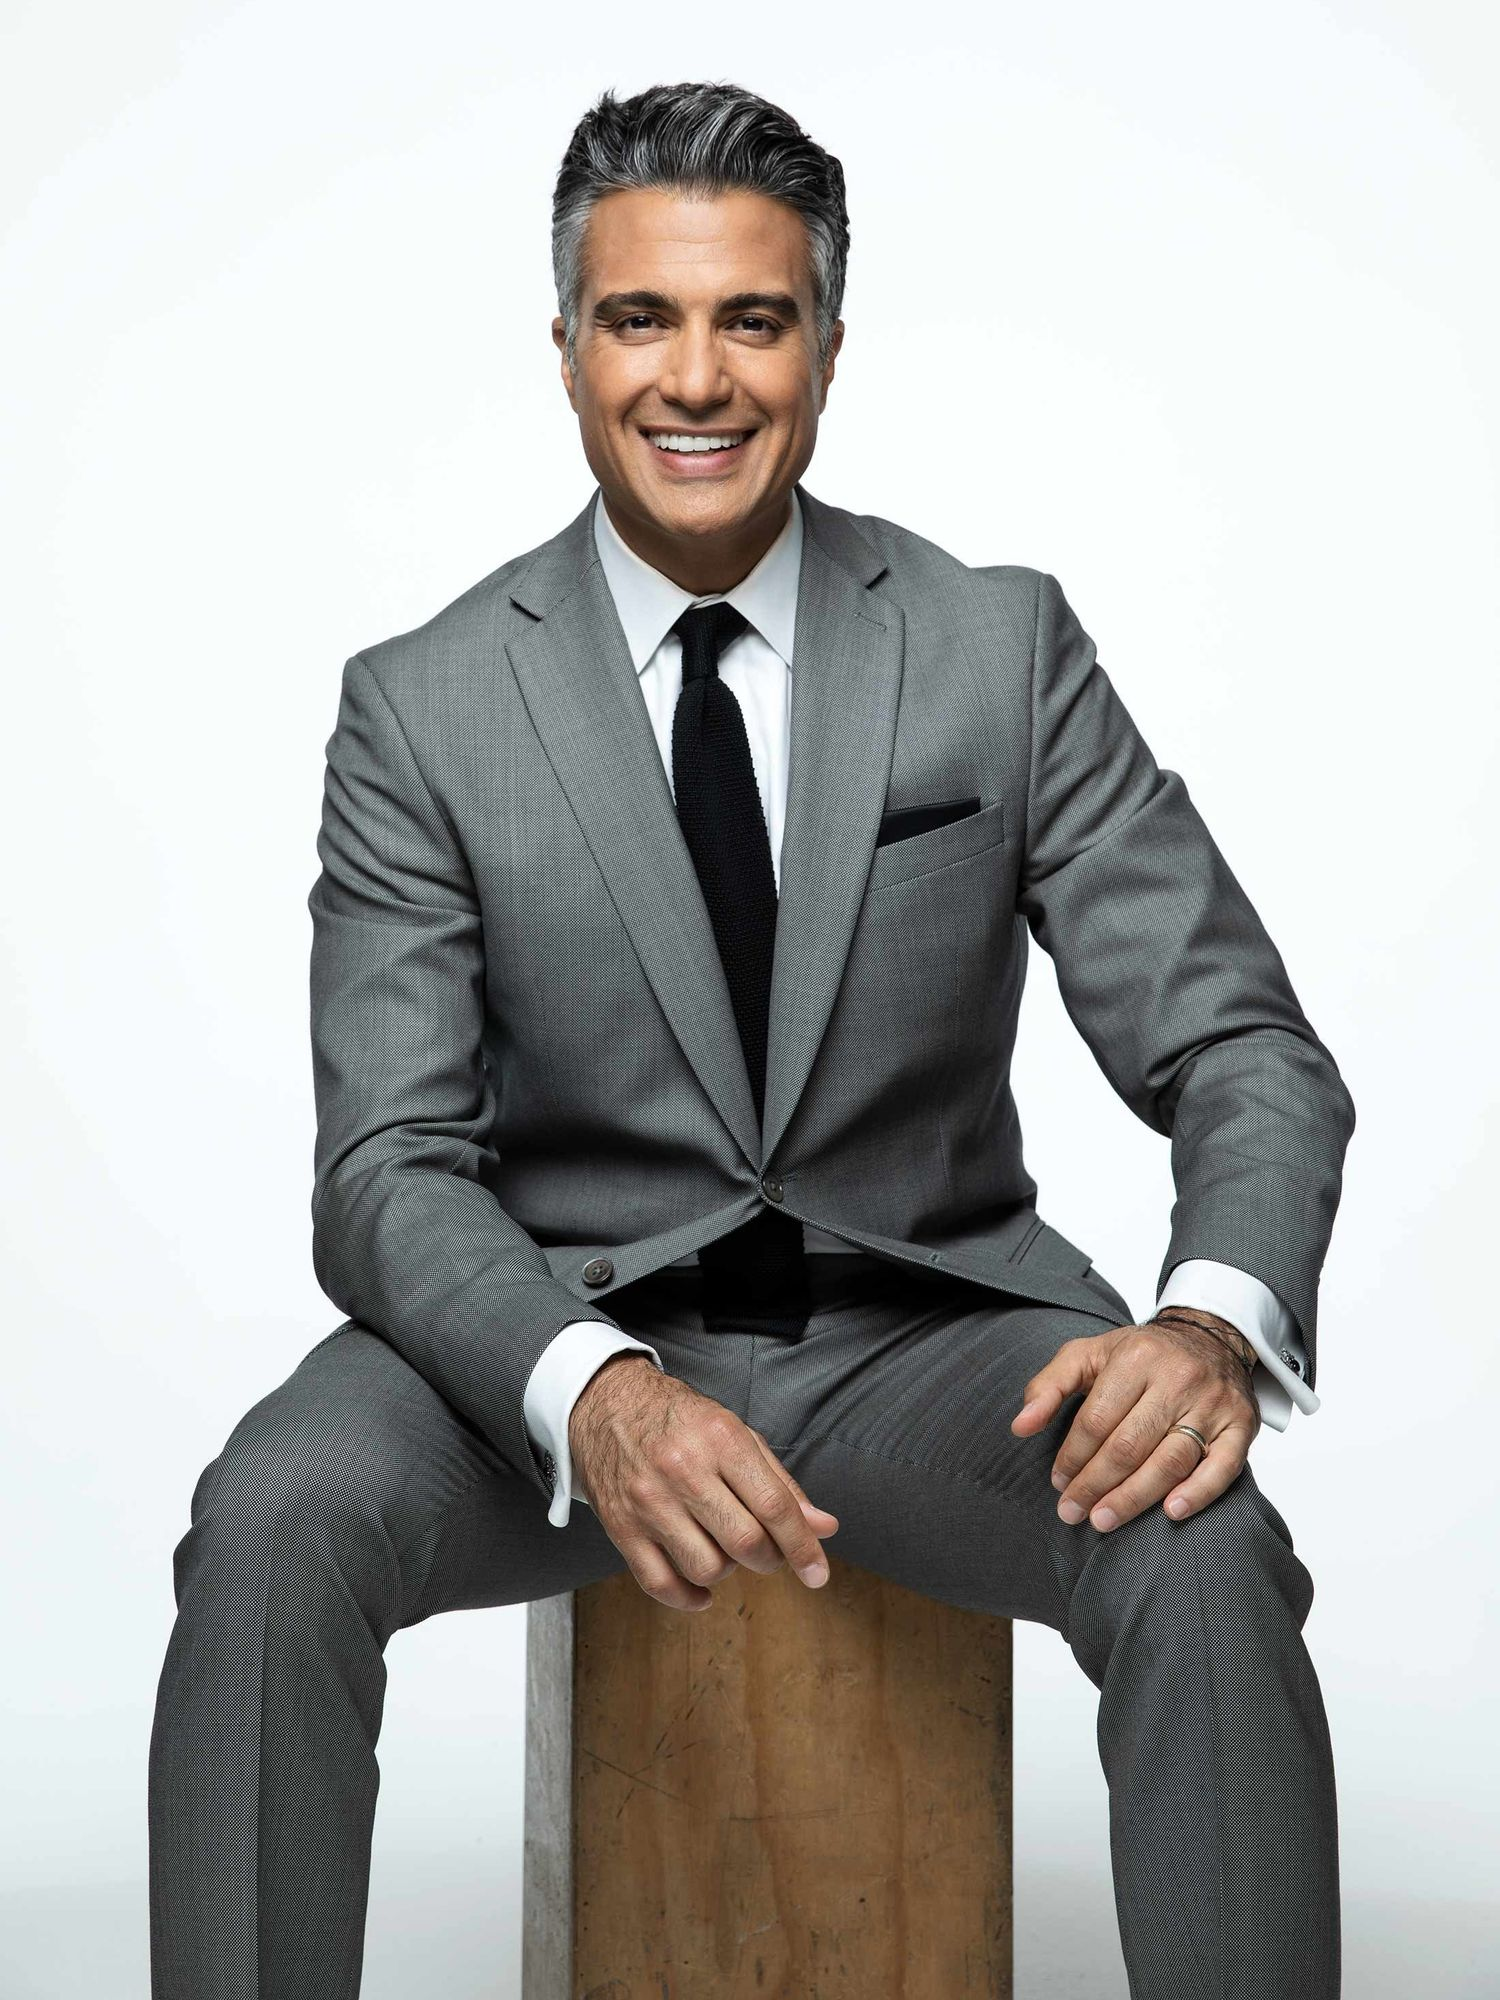 Actor Jaime Camil wearing a suit and sitting on a stool.